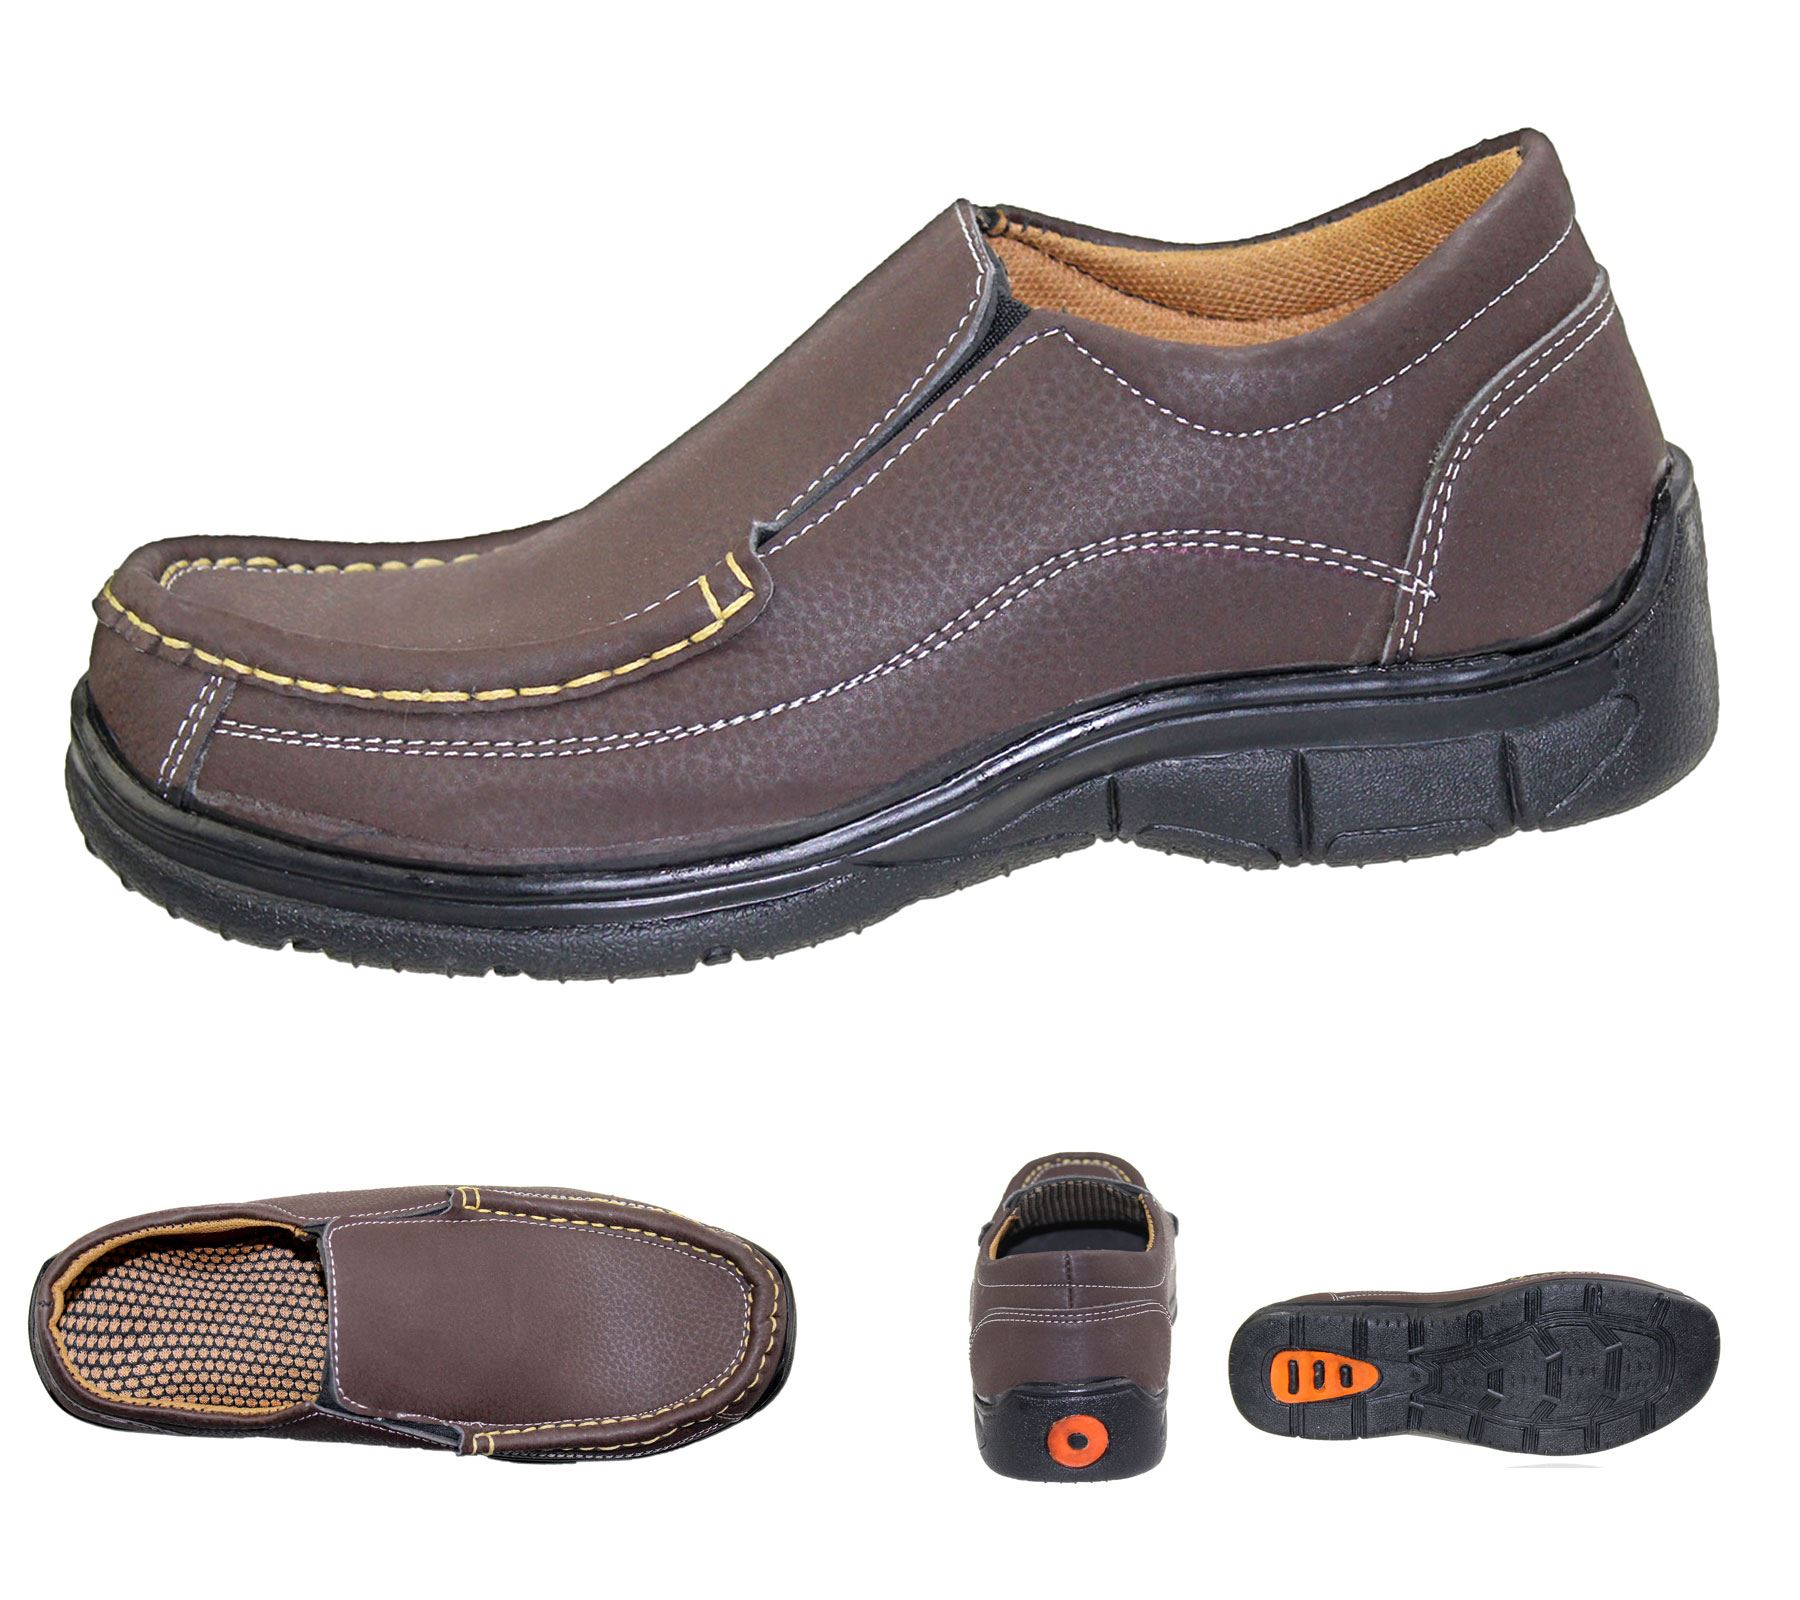 Shoes Without Laces For Mens Online